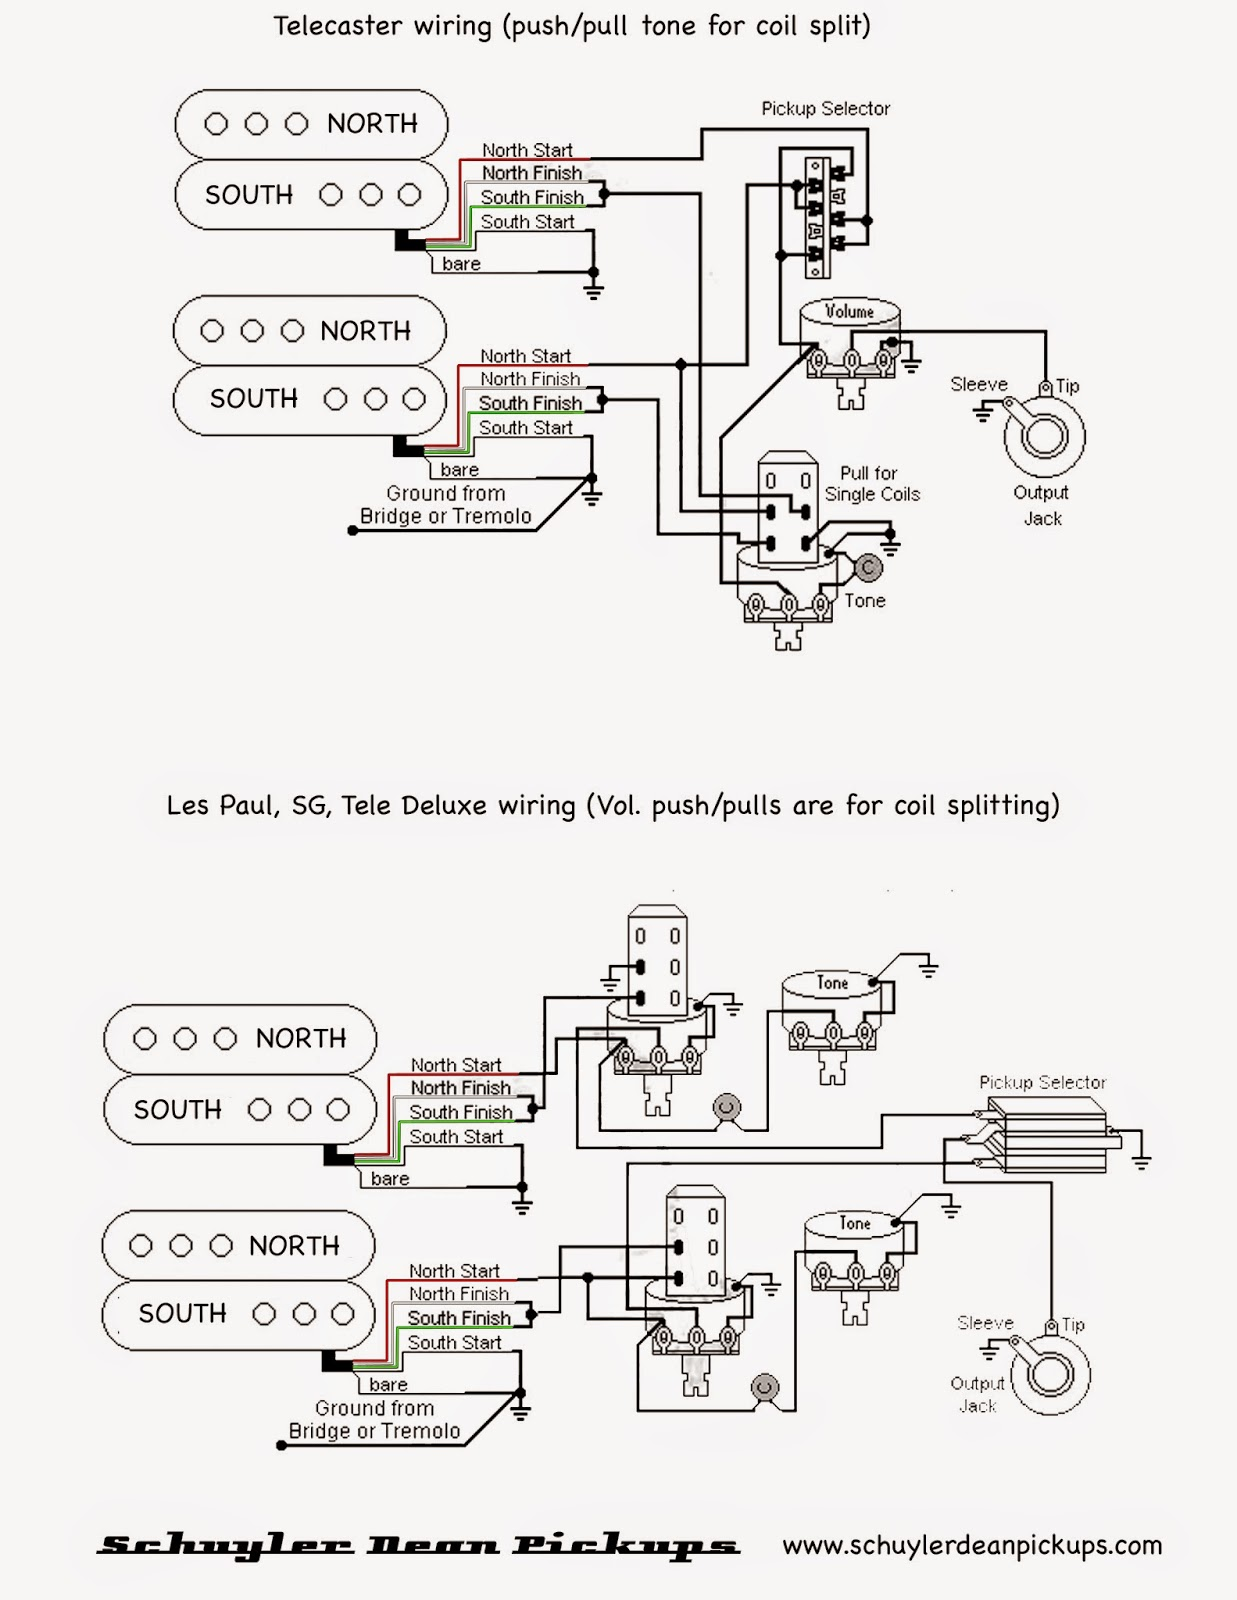 Wiring%2Bdiagram%2BTele LP schuyler dean pickups 2014  at virtualis.co